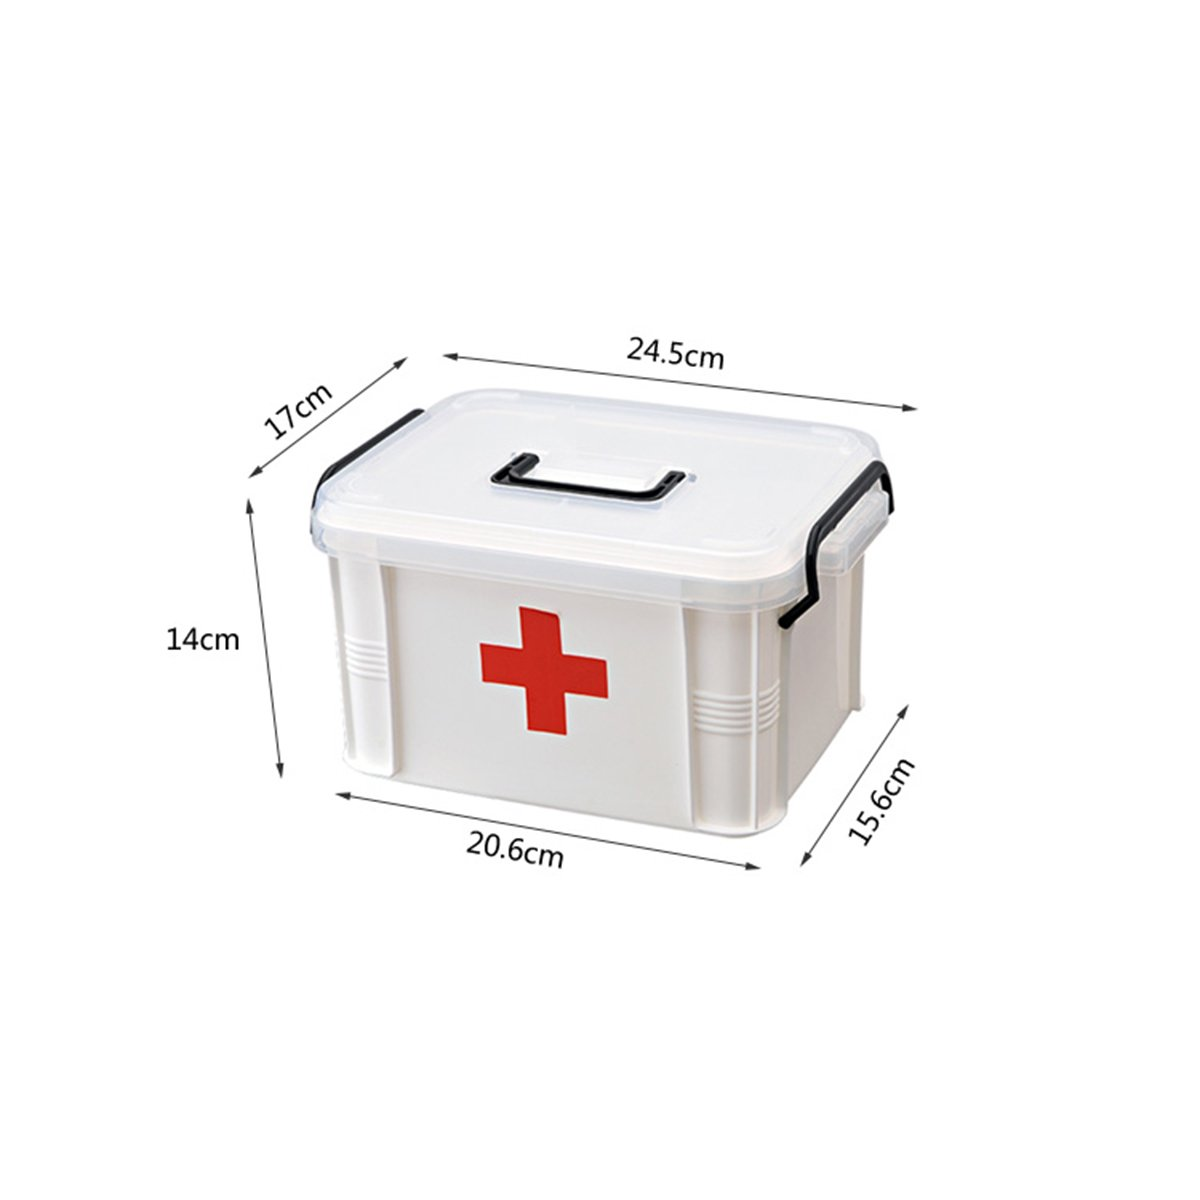 Small Size Double Layer Family Medicine Cabinets First Aid Kit Plastic Storage Pill Cases Household First Aid Kit Multifunctional Medicine Box Storage Boxes Organizer